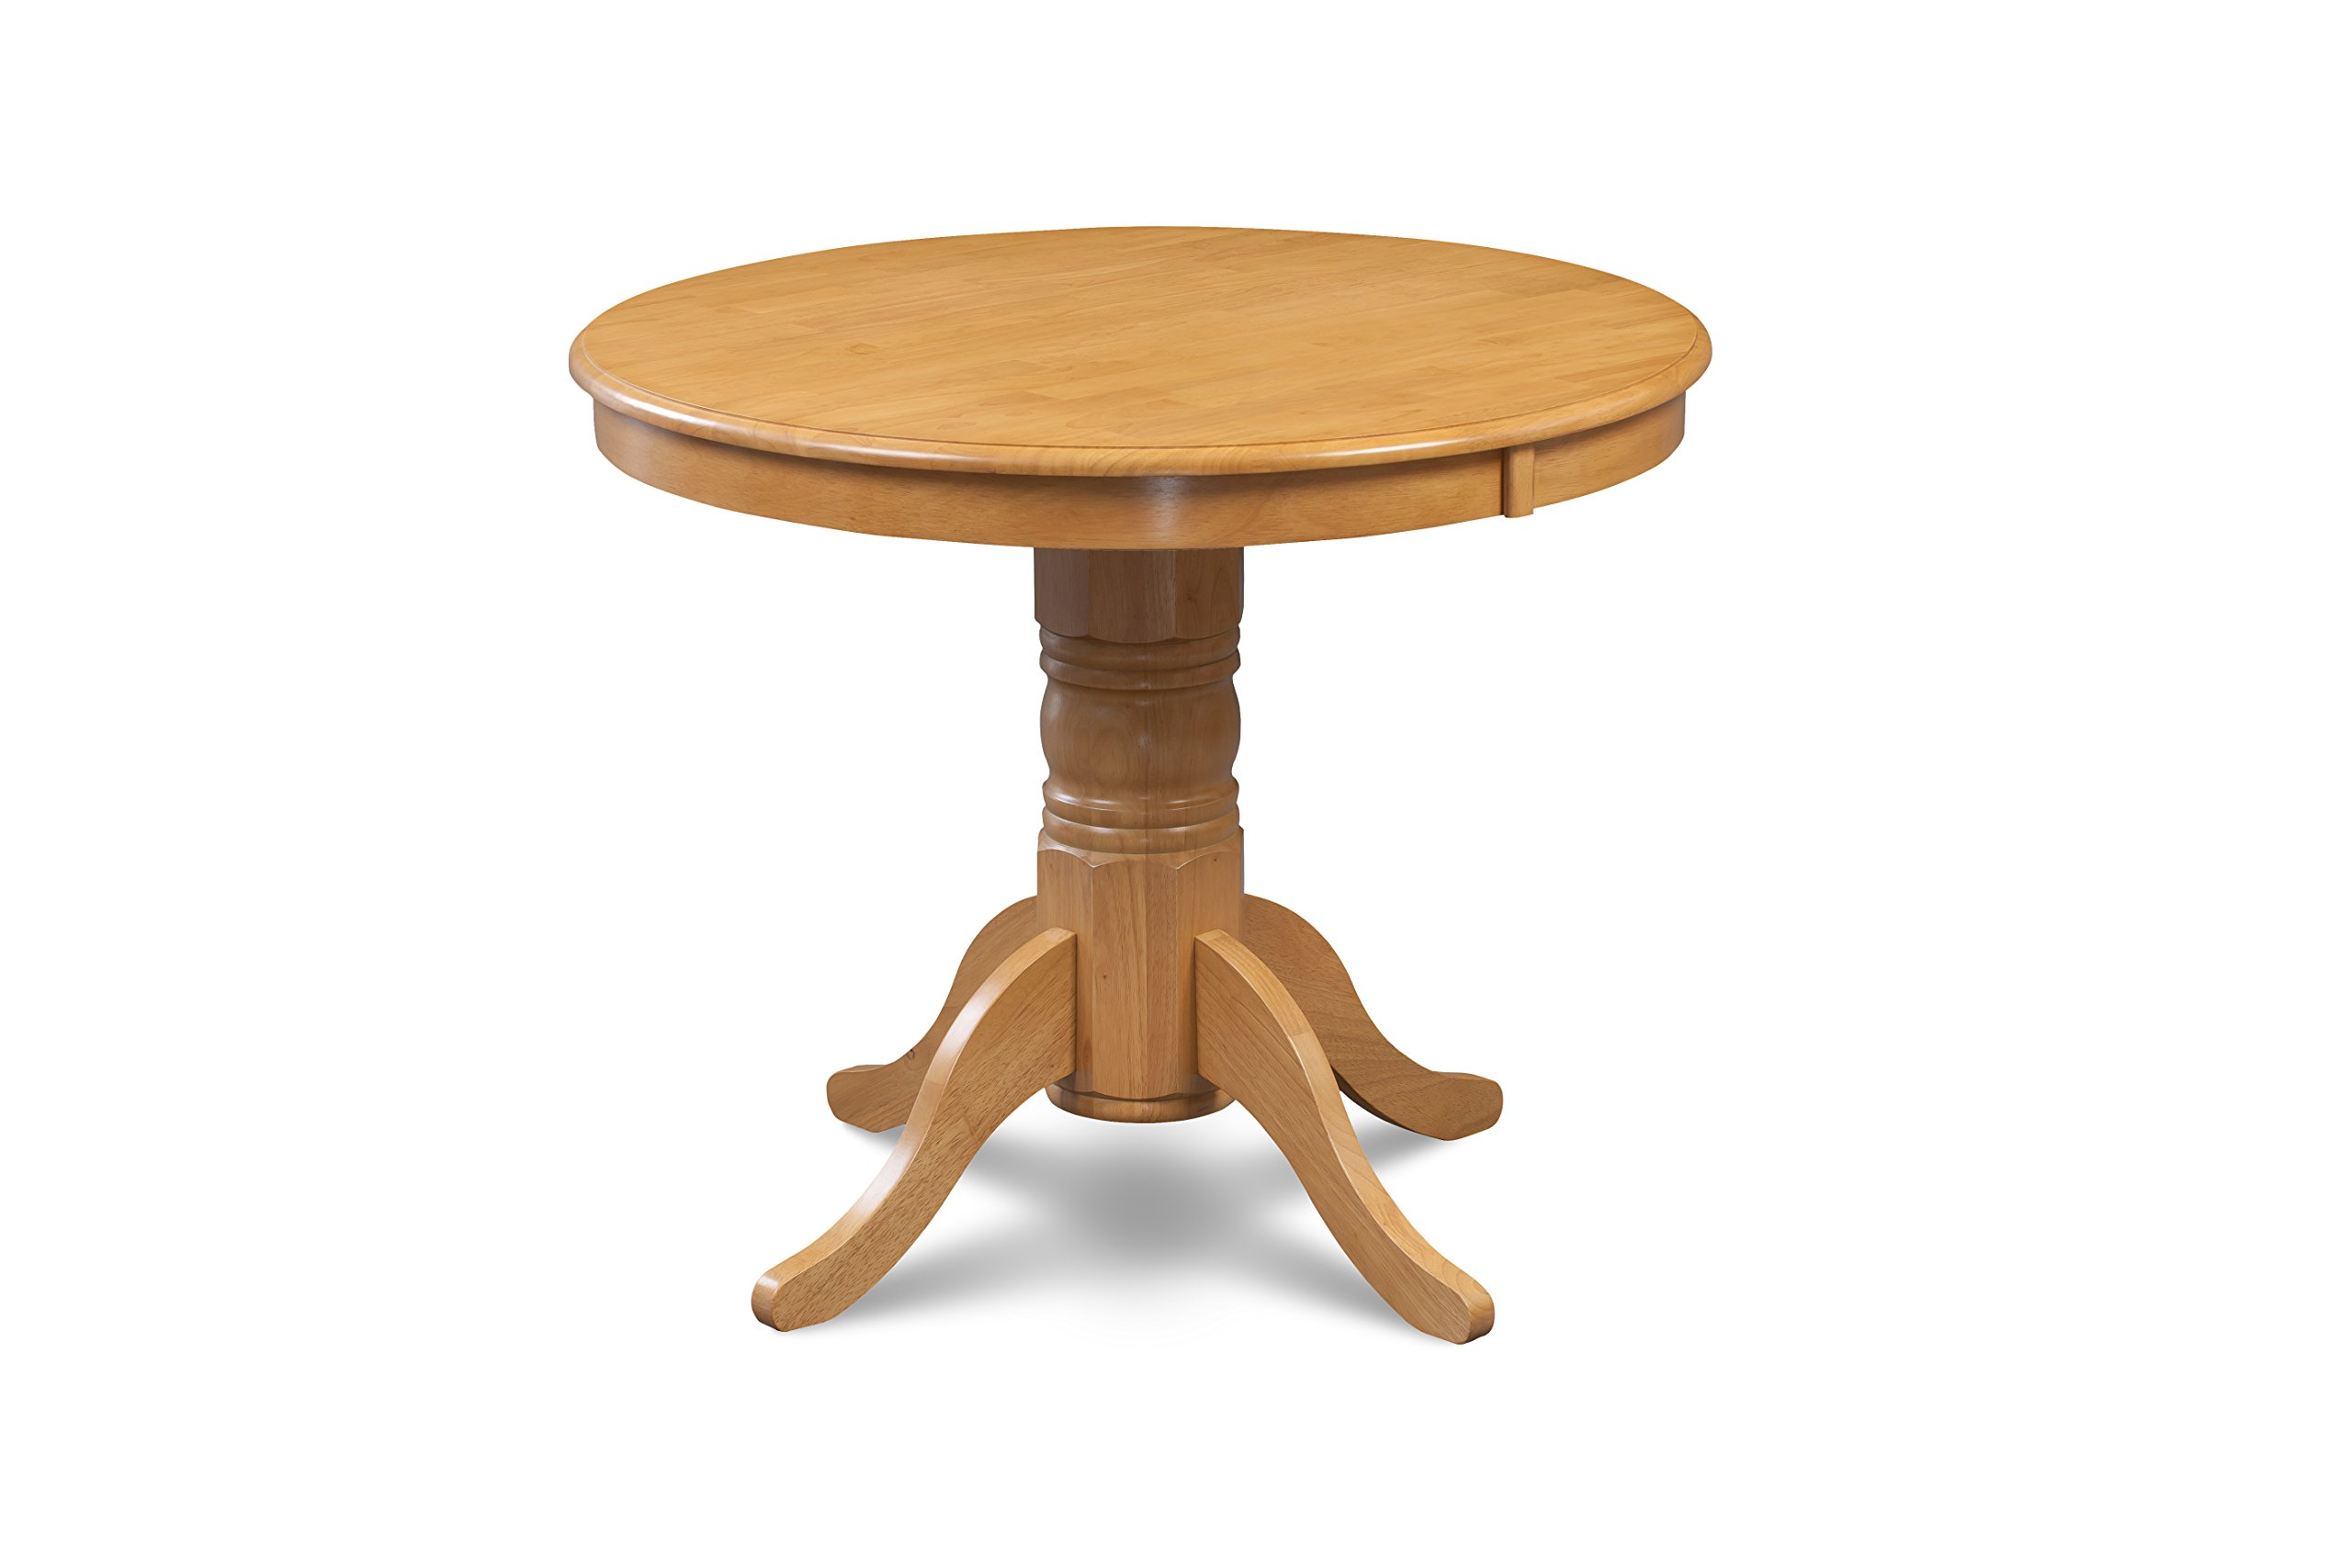 Trithi Furniture Antville Round Dining Table in Oak Finish